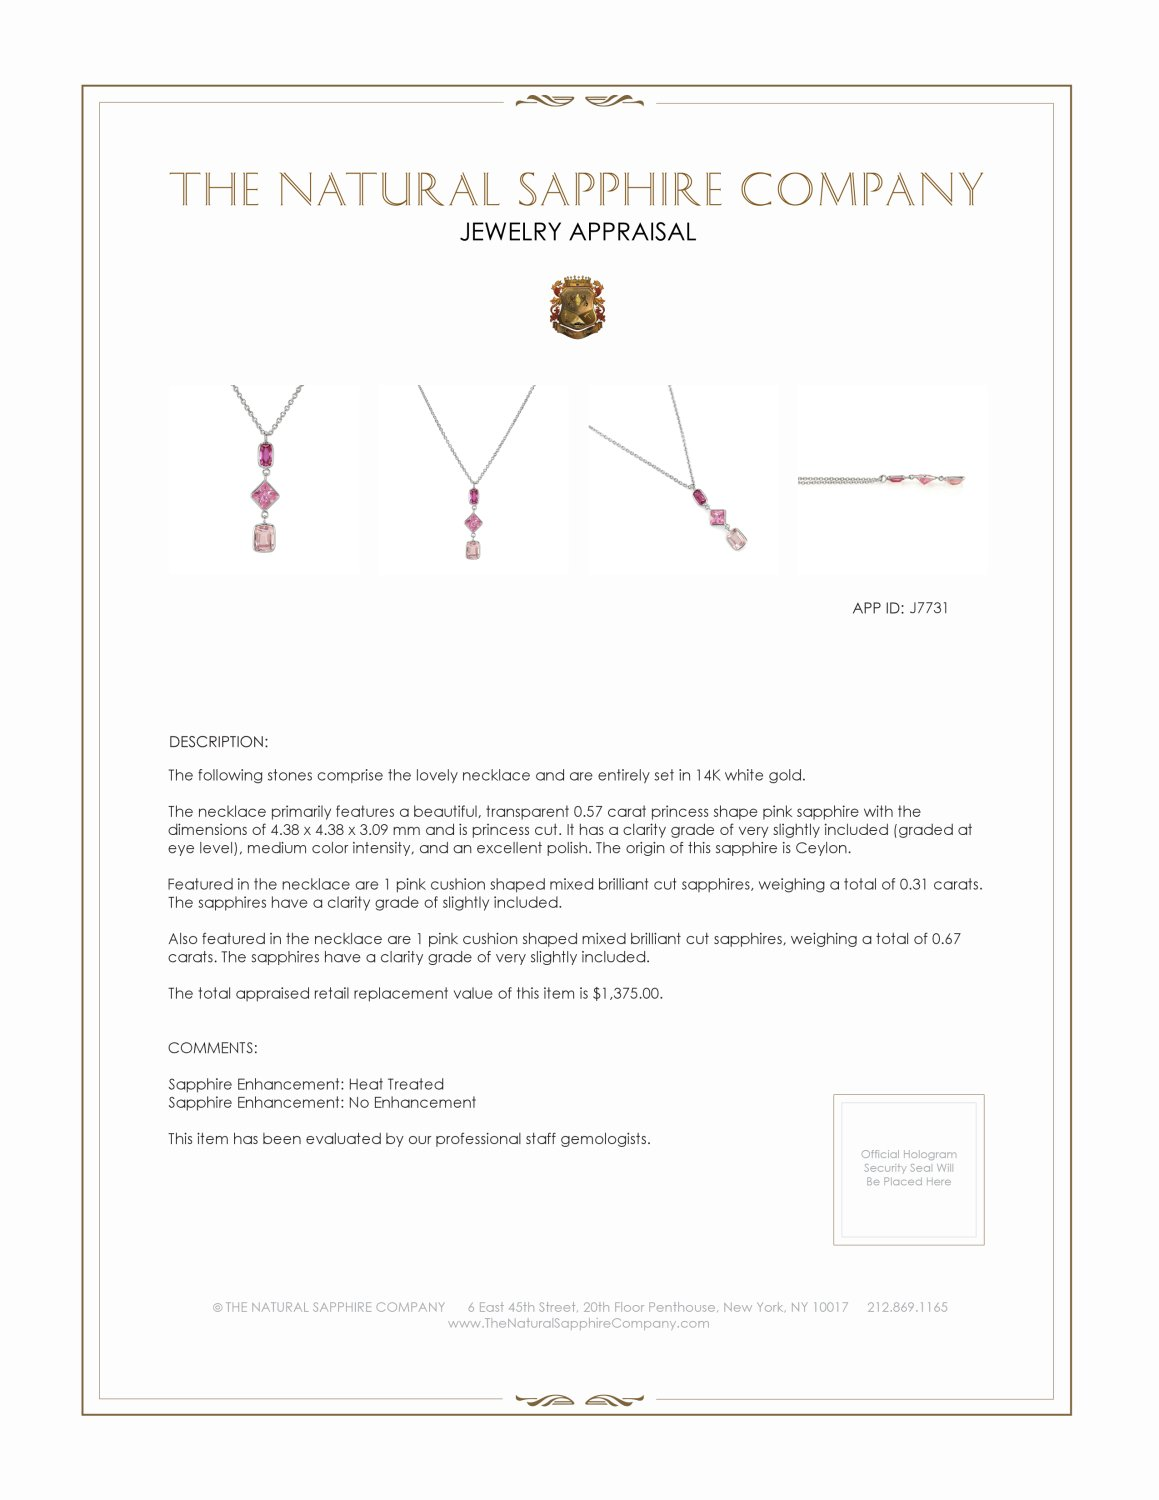 0.67ct Pink Sapphire Necklace Certification 2